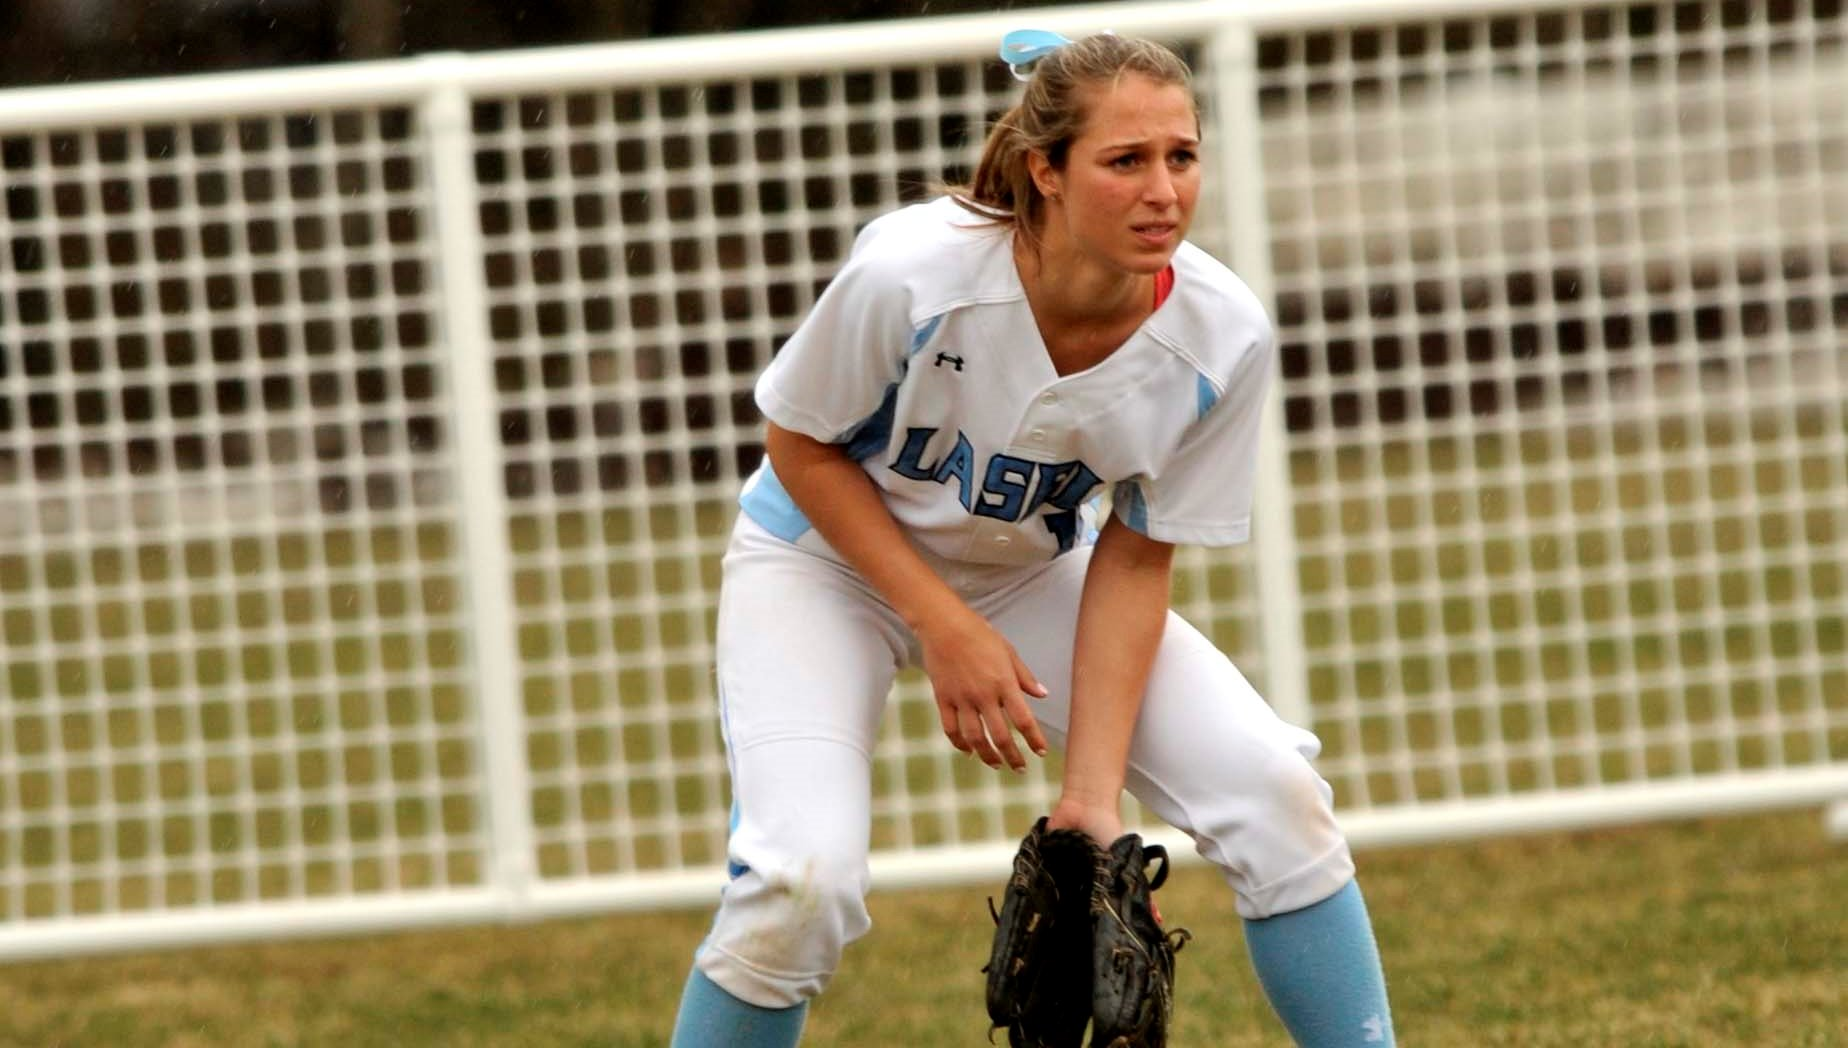 Grady Walk-Off Single Helps Lasell Sweep Lesley in Softball